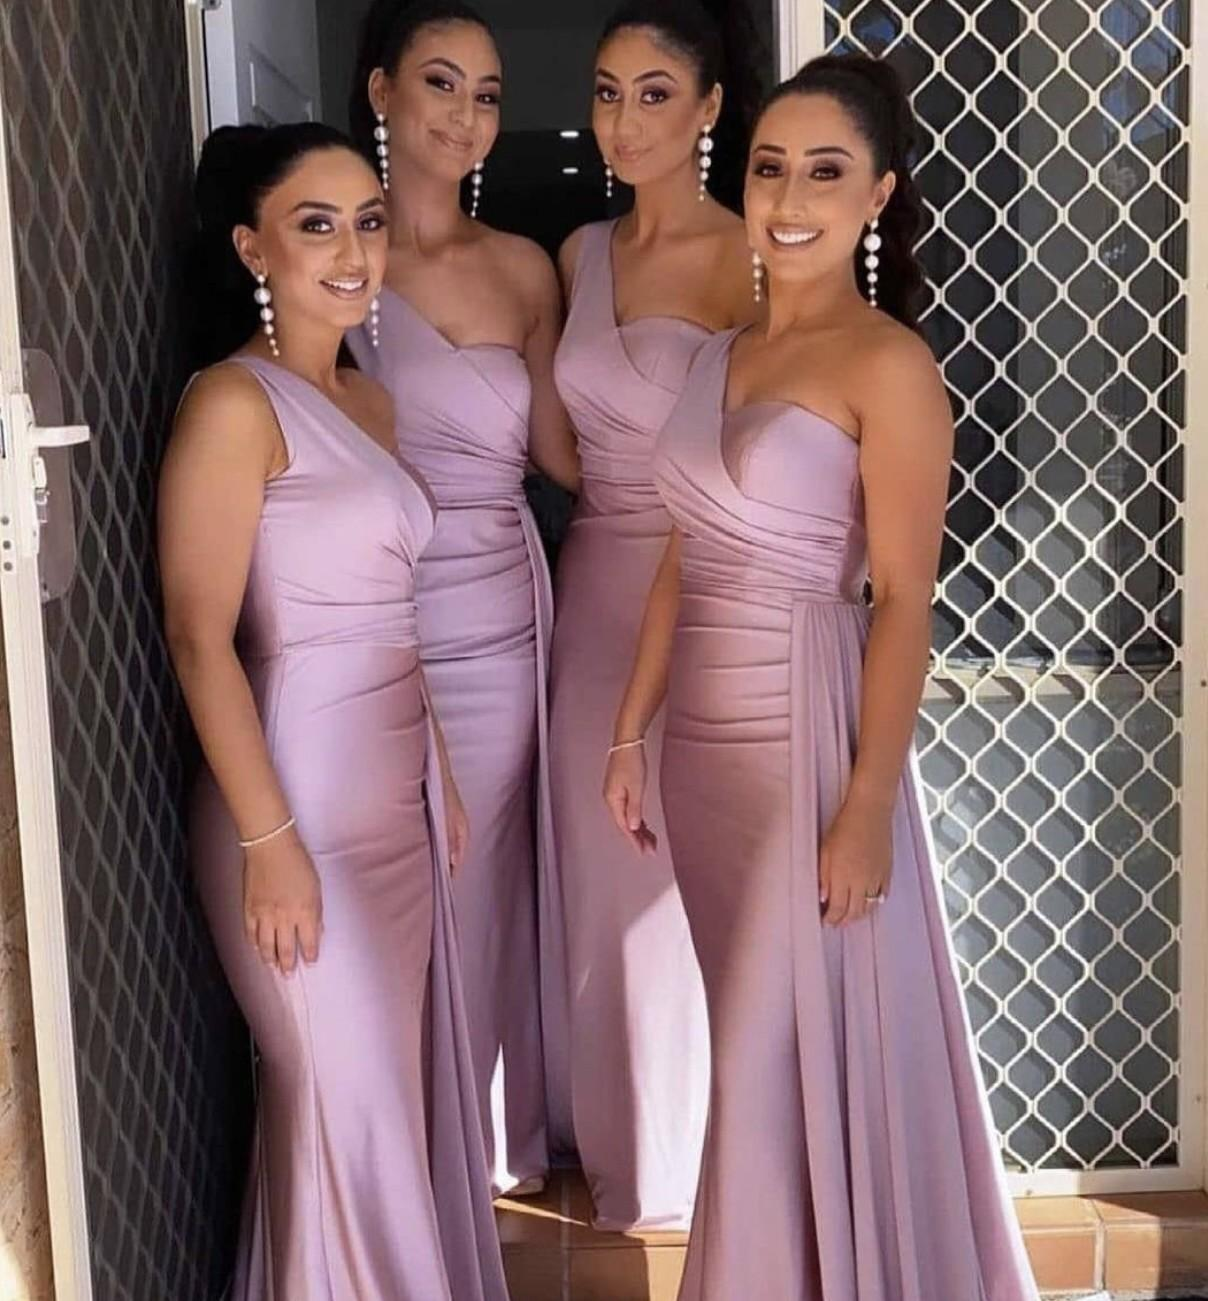 2021 Sexy One Shoulder Bridesmaid Dresses For African Unique Design Full Length Wedding Guest Gowns Junior Maid Of Honor Dress Ribbon Elastic Silk Like Satin Party